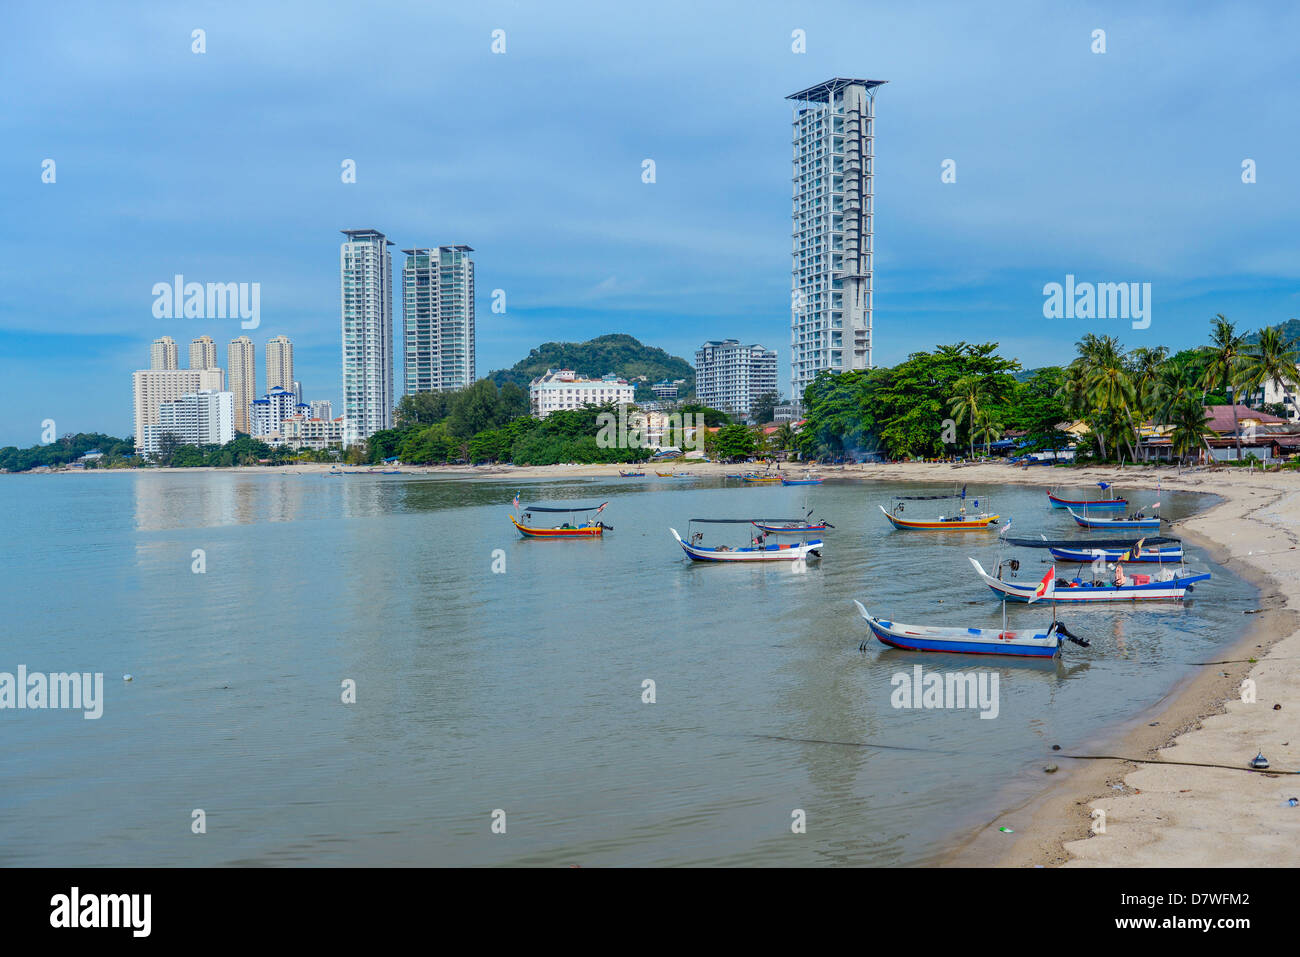 ASia Malaysia Penang Georgetown The coastline - Stock Image